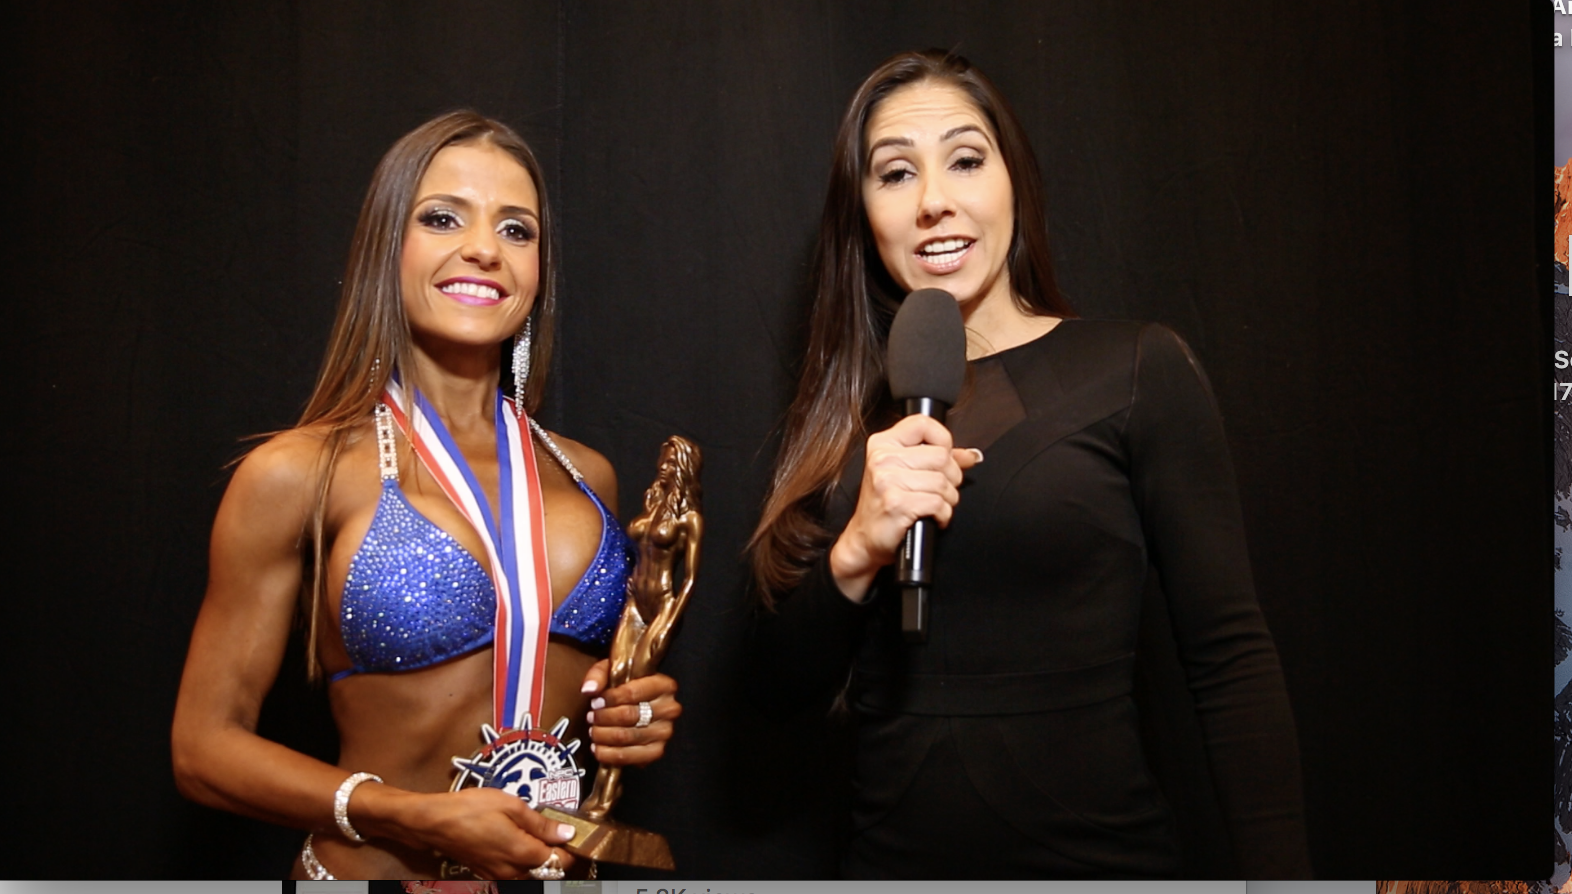 2017 NPC Eastern USA Bikini Overall Winner Video Interview By Ms.Bikini Olympia Angelica Teixeira